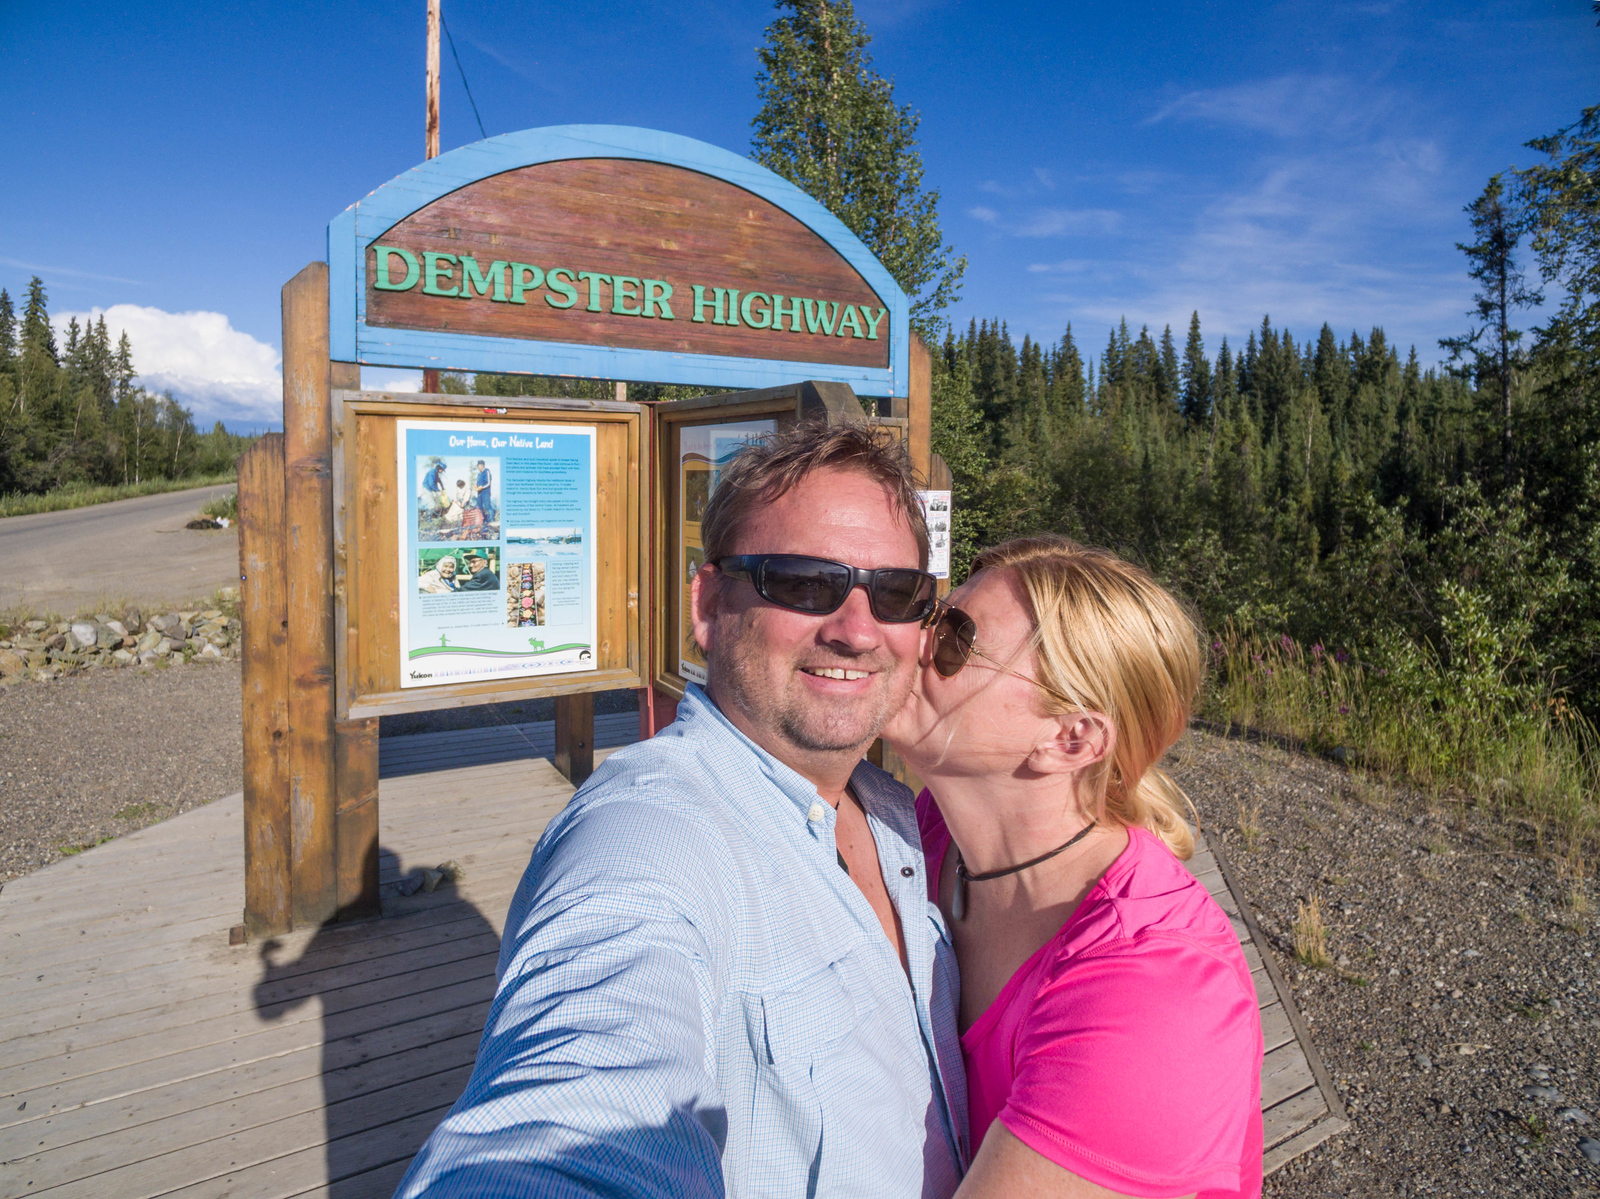 We drove the Dempster Highway!!